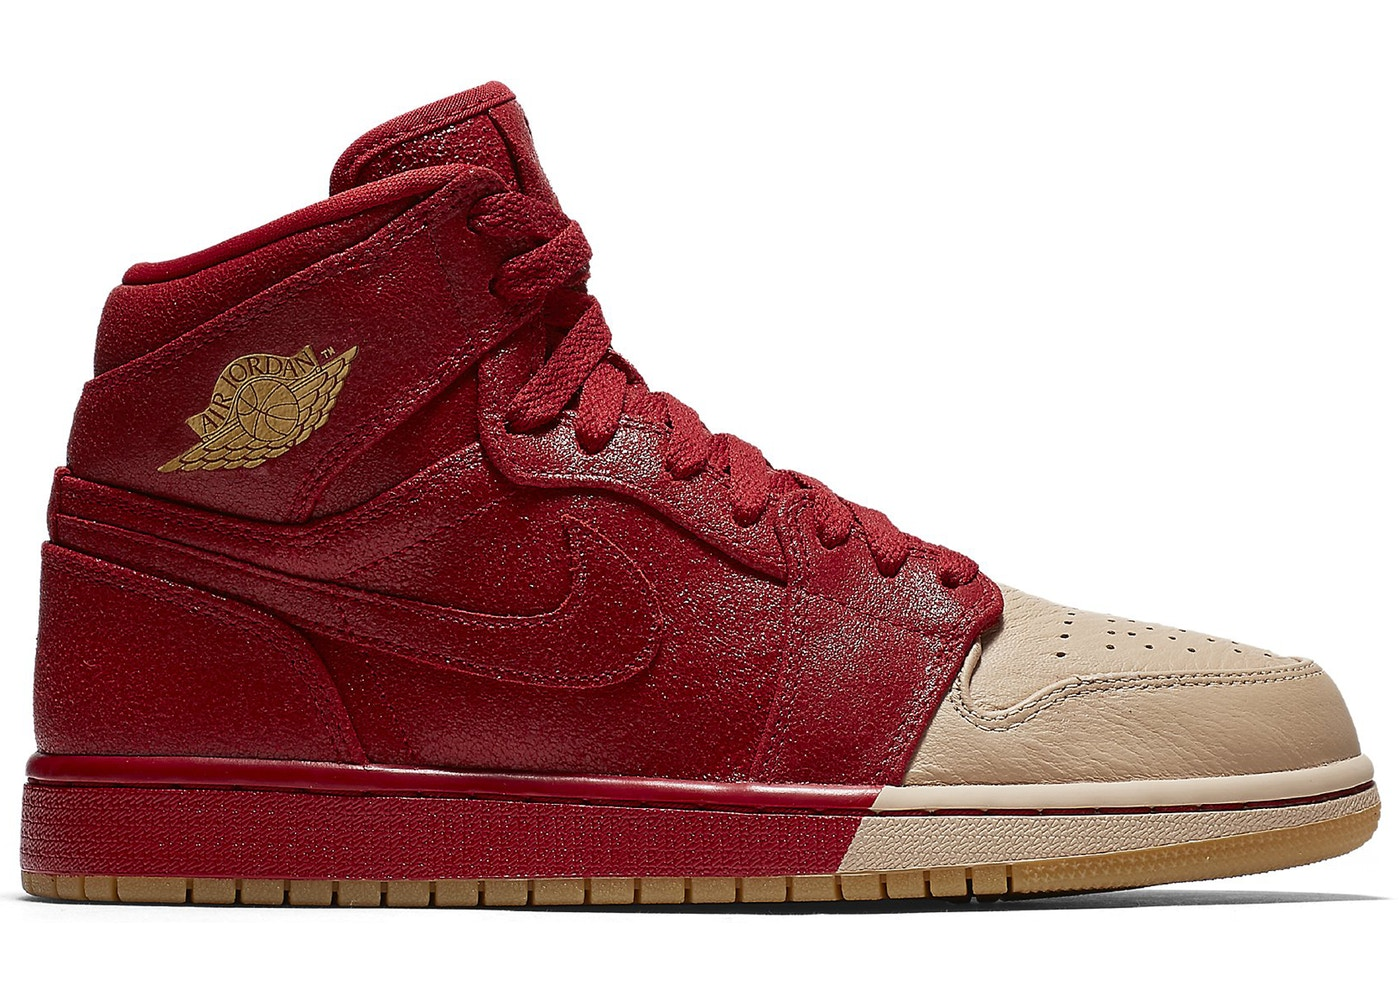 half off 11988 0ba4f Sell. or Ask. Size  12W. View All Bids. Jordan 1 Retro High ...